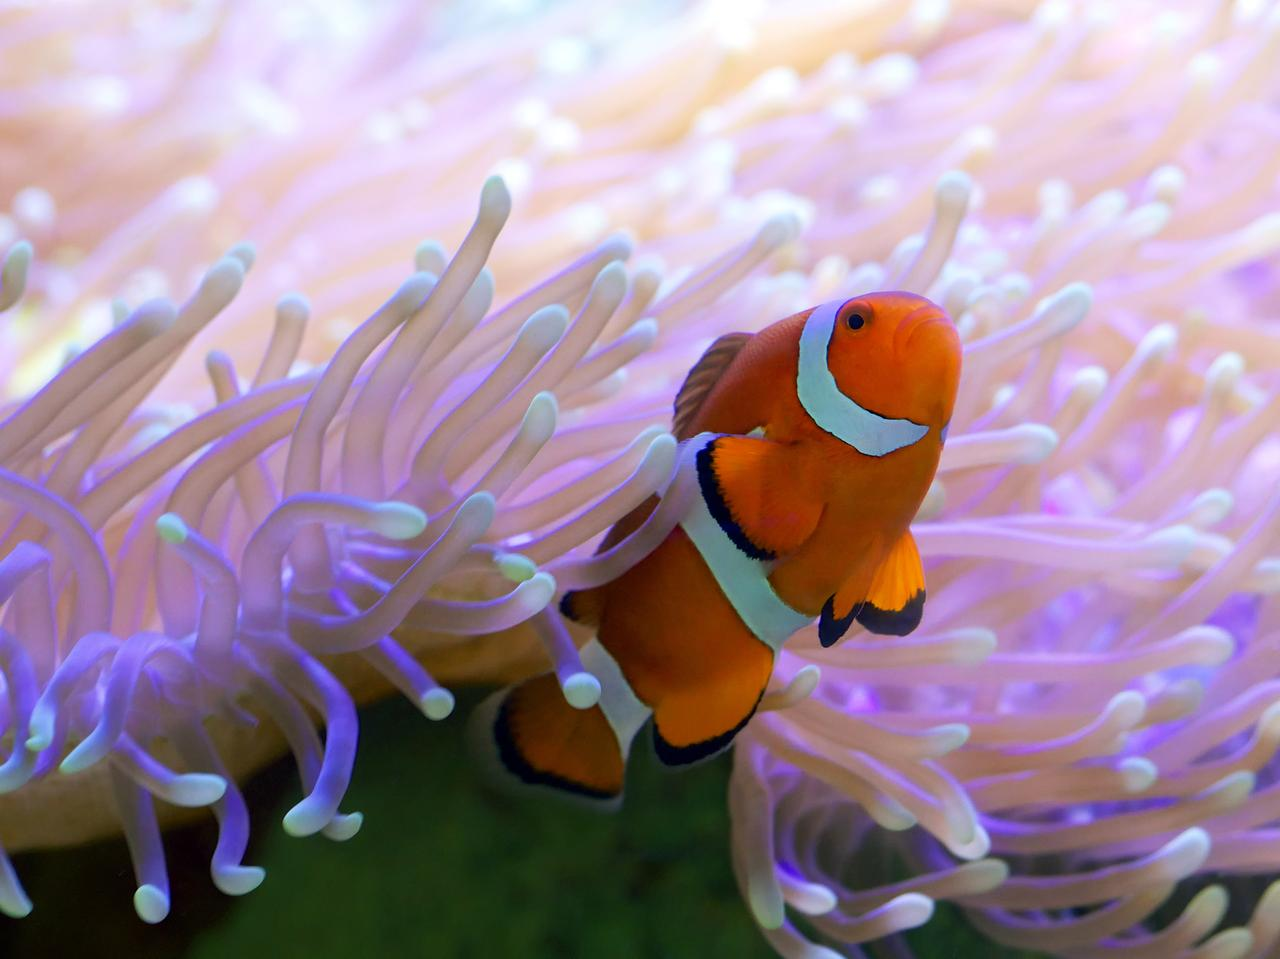 Tropical clown fish hiding in bright pink anemone. Clown fish are also known worldwide as Nemo and can be found in and around the blue waters of Whitsundays.